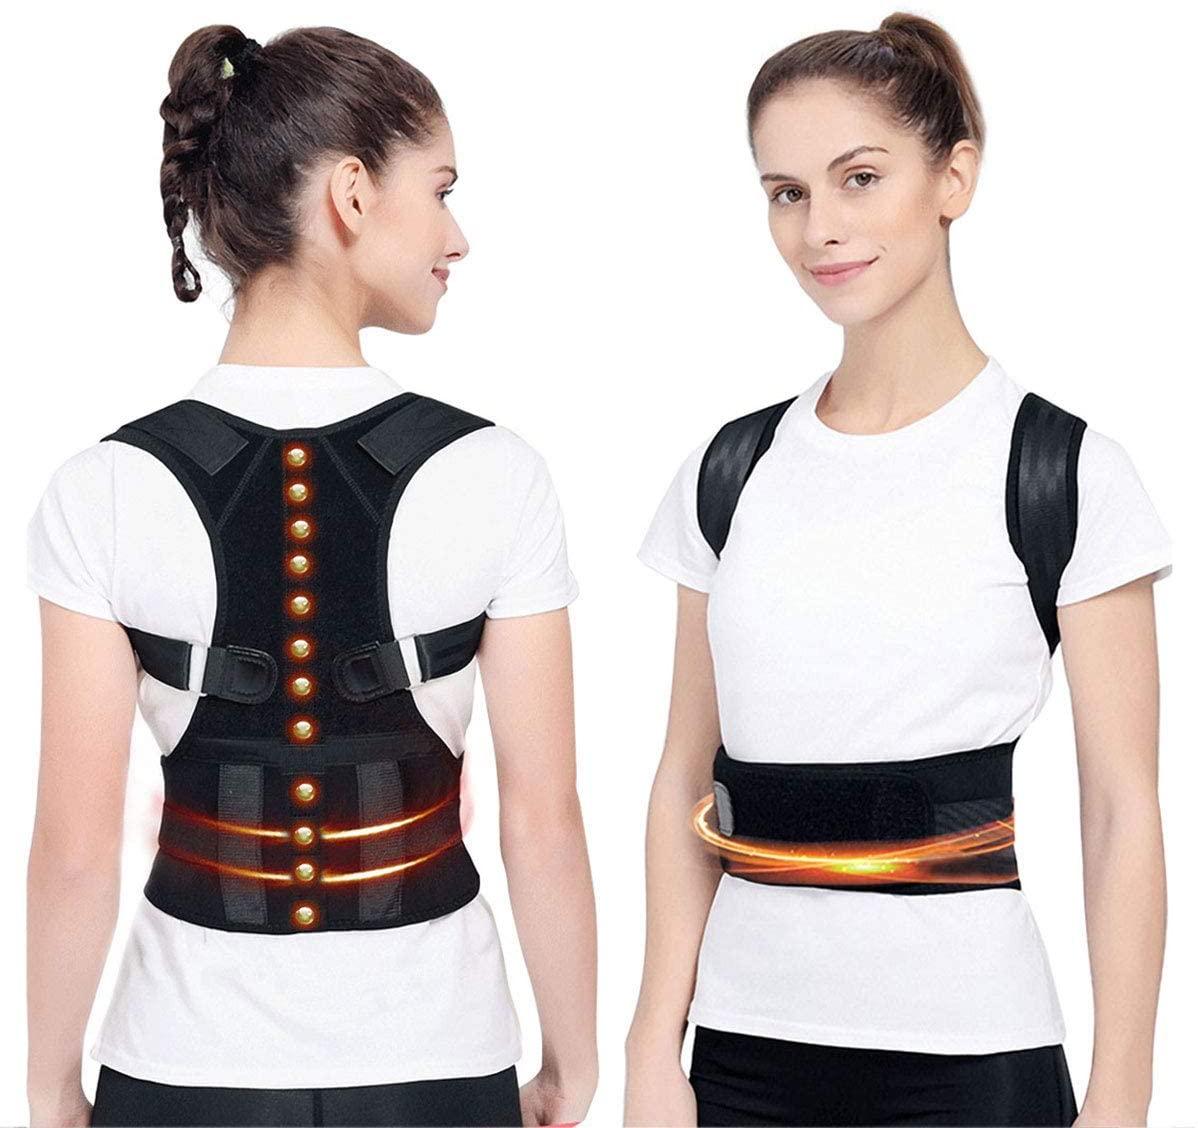 Magnetic Posture Corrector Back Brace,Therapy Support for Back Neck Shoulder and Upper Back Pain Relief Perfect Posture Brace for Cervical and Lumbar Spine Fully Adjustable Belt and Straps(M)